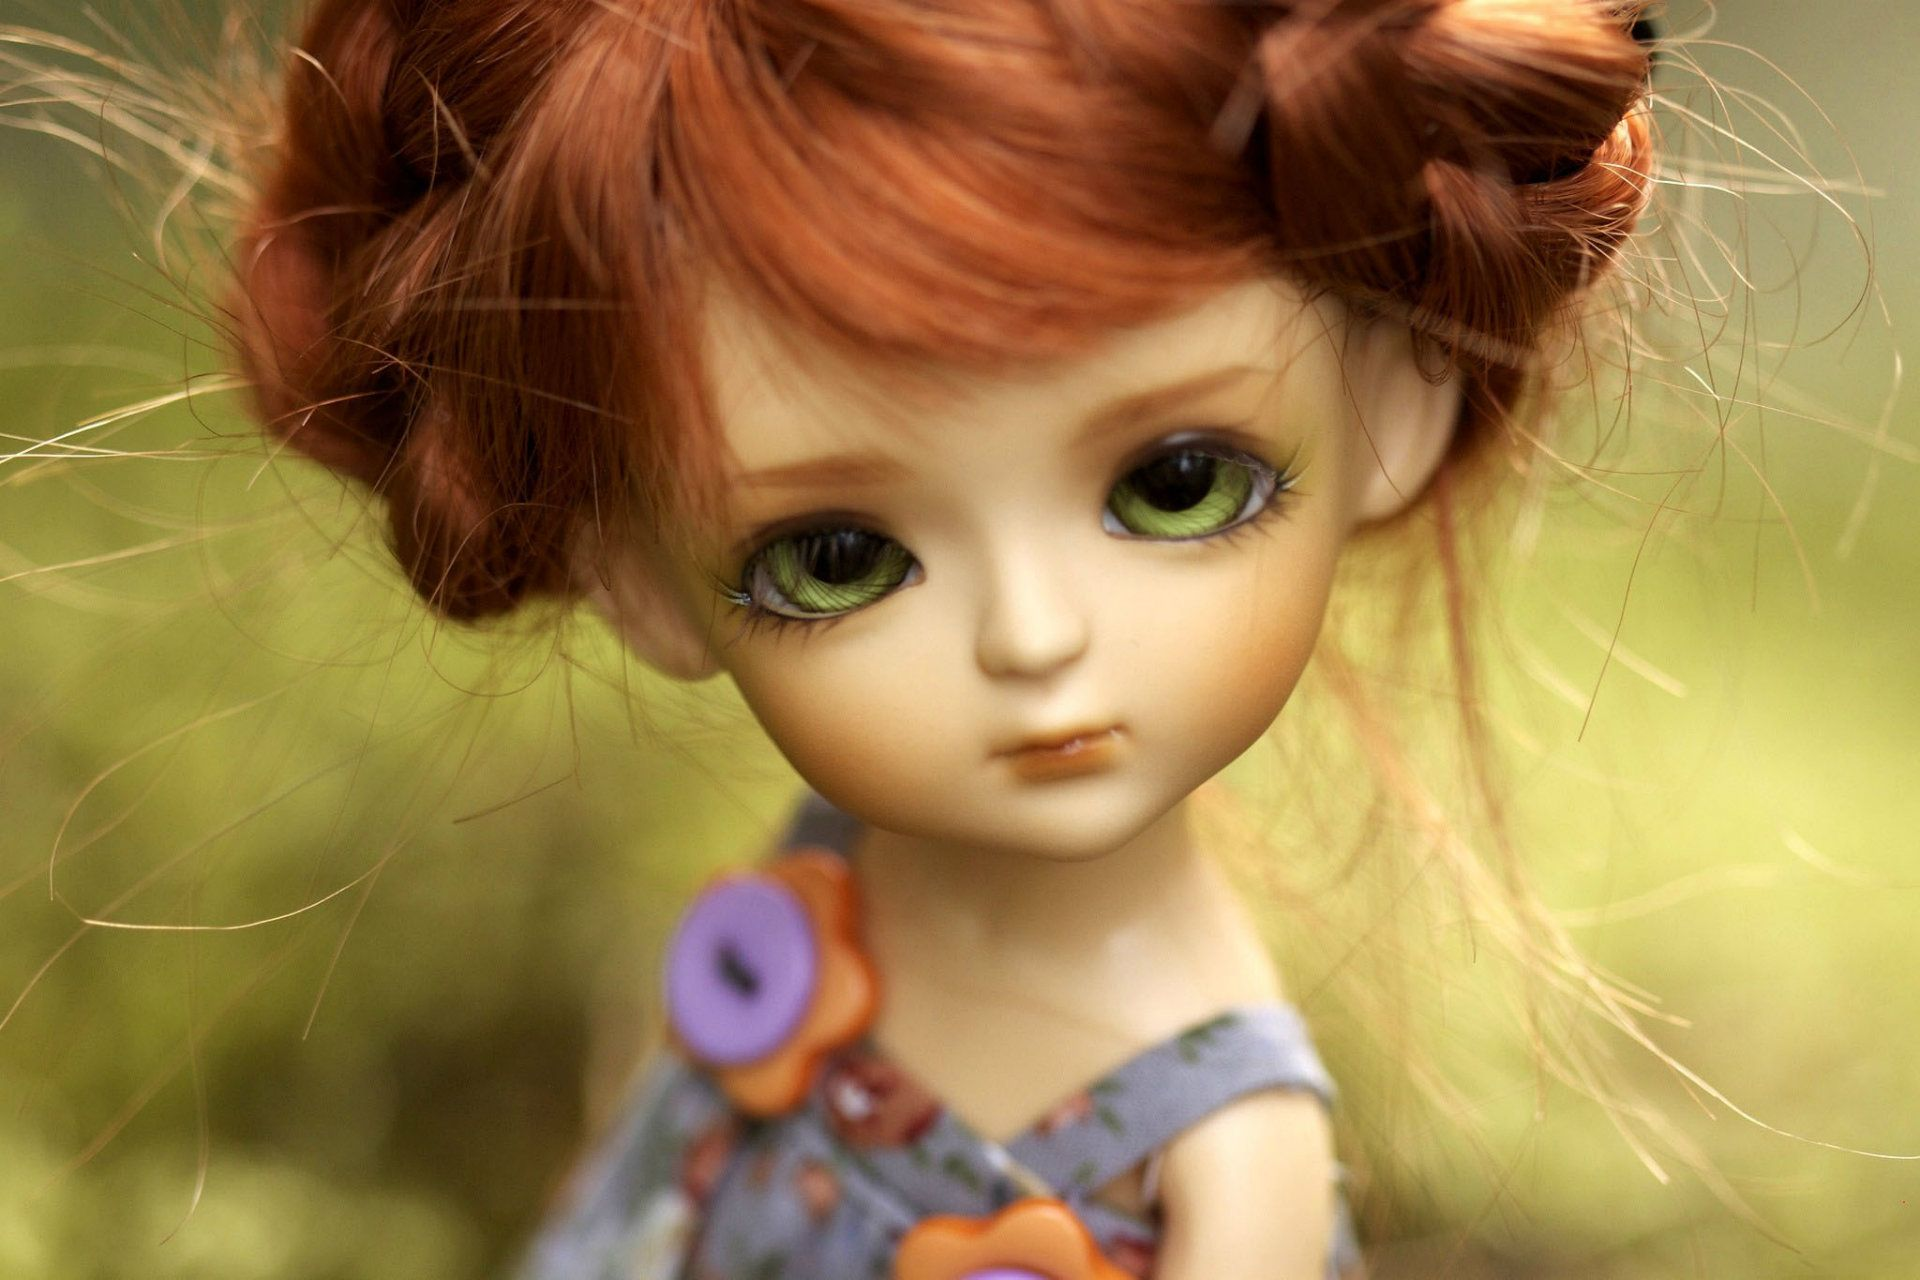 doll wallpapers collection for free download 1920×1200 pics of doll